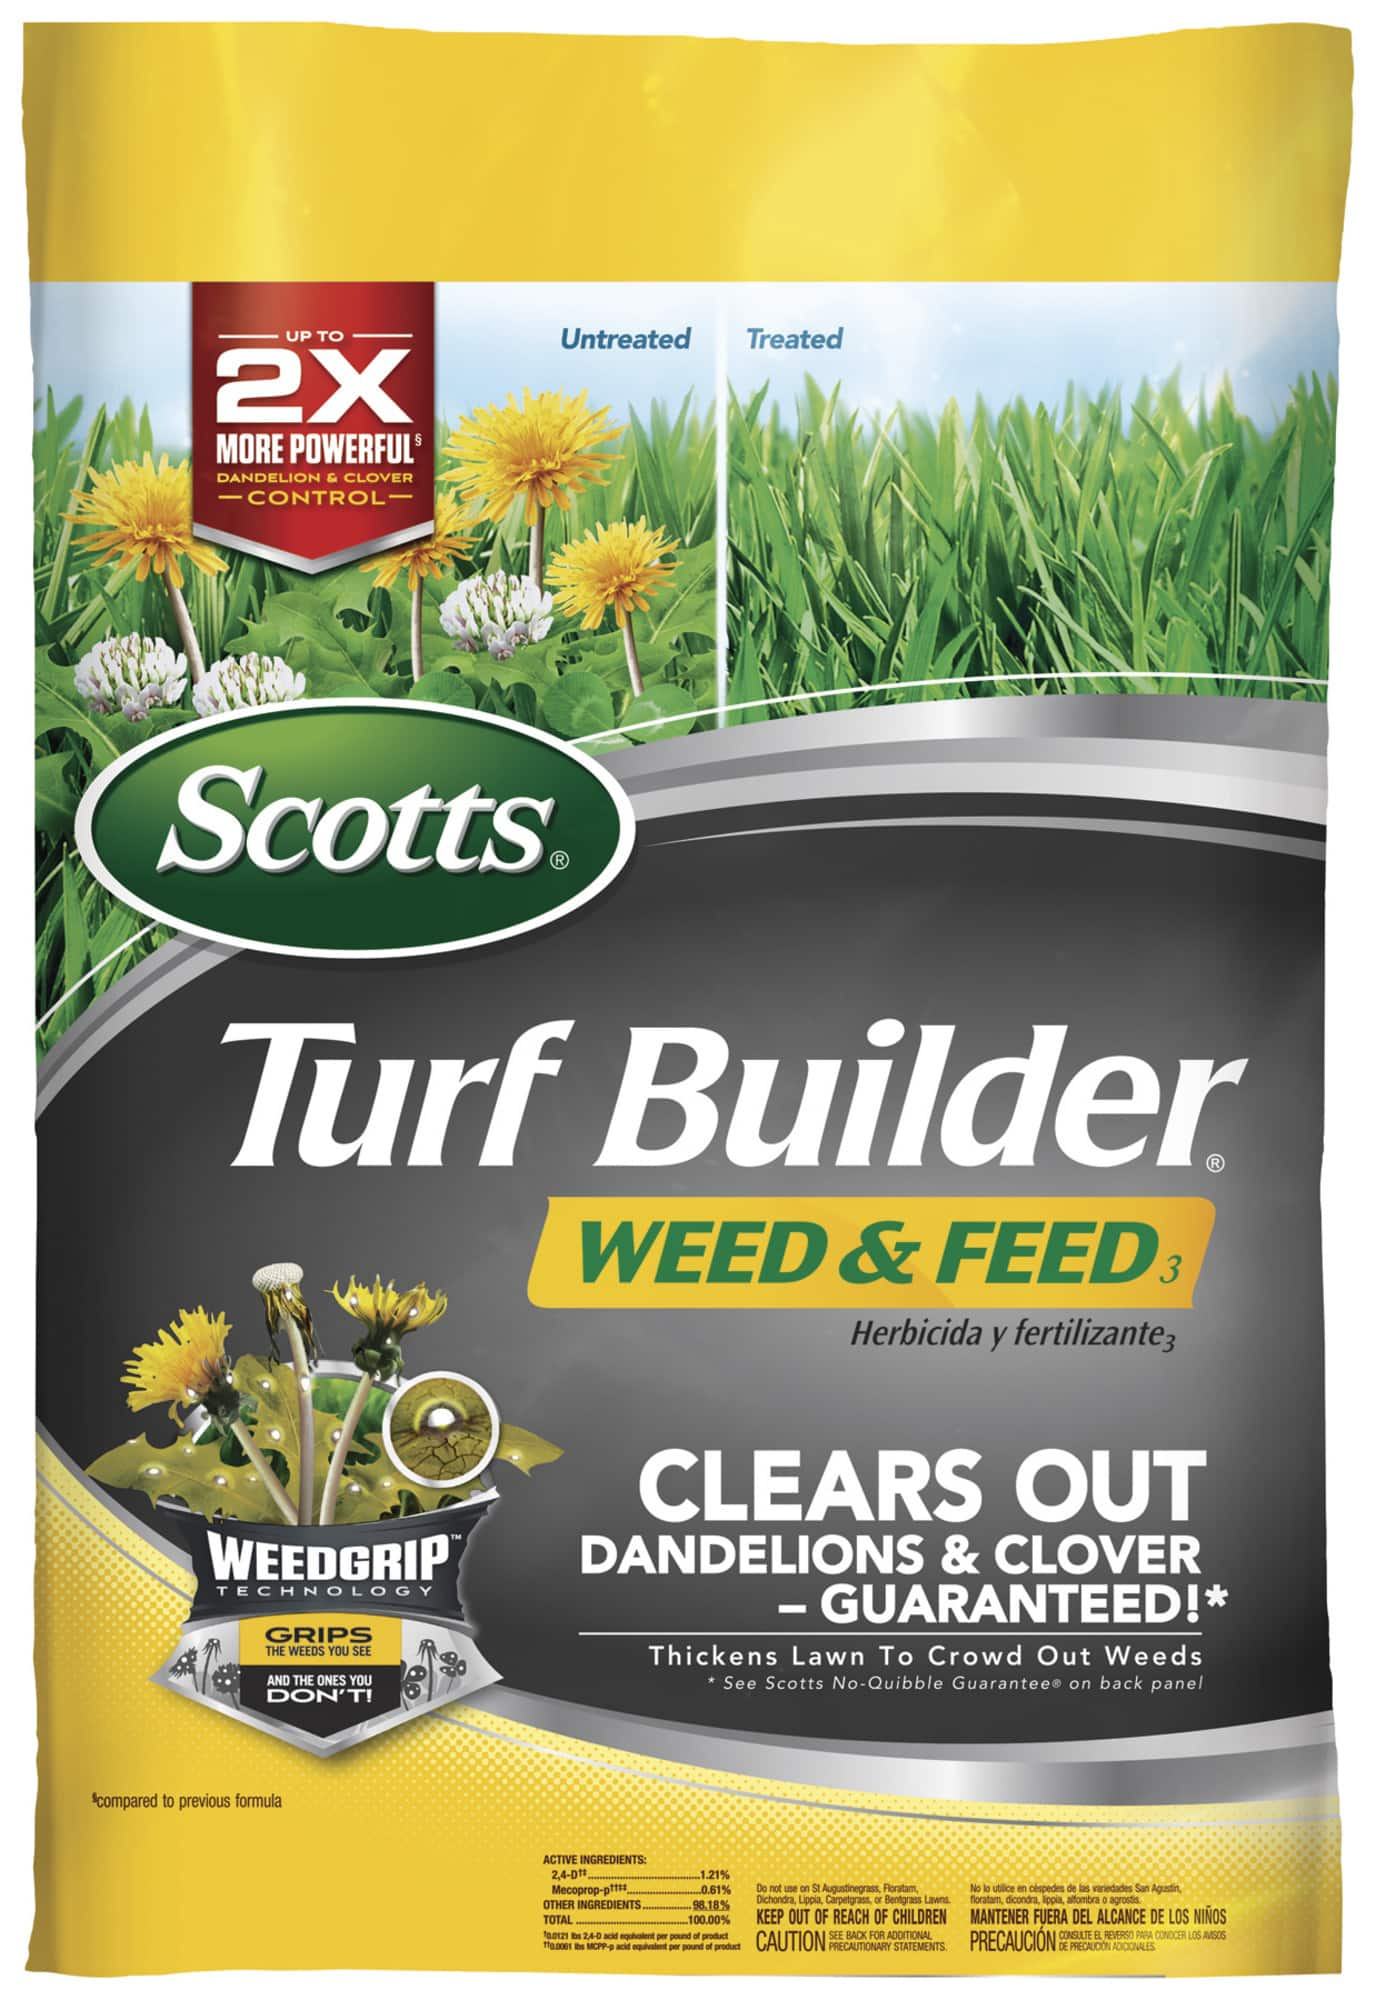 Scotts Weed & Feed and Scotts Triple Action - $5 YMMV